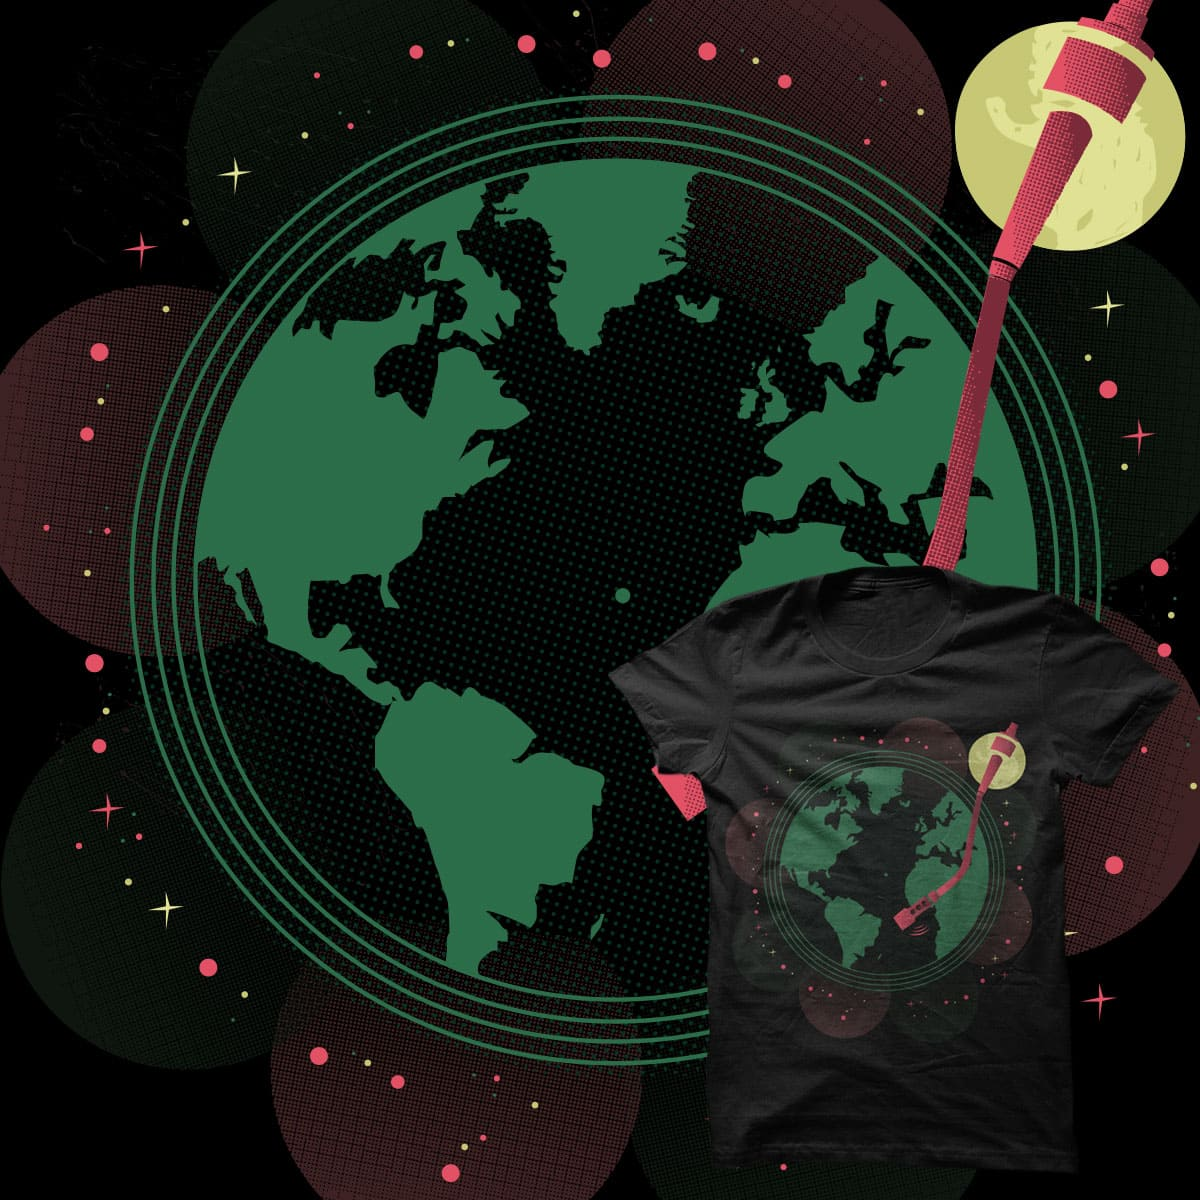 music is my world by Jake_Kraken on Threadless